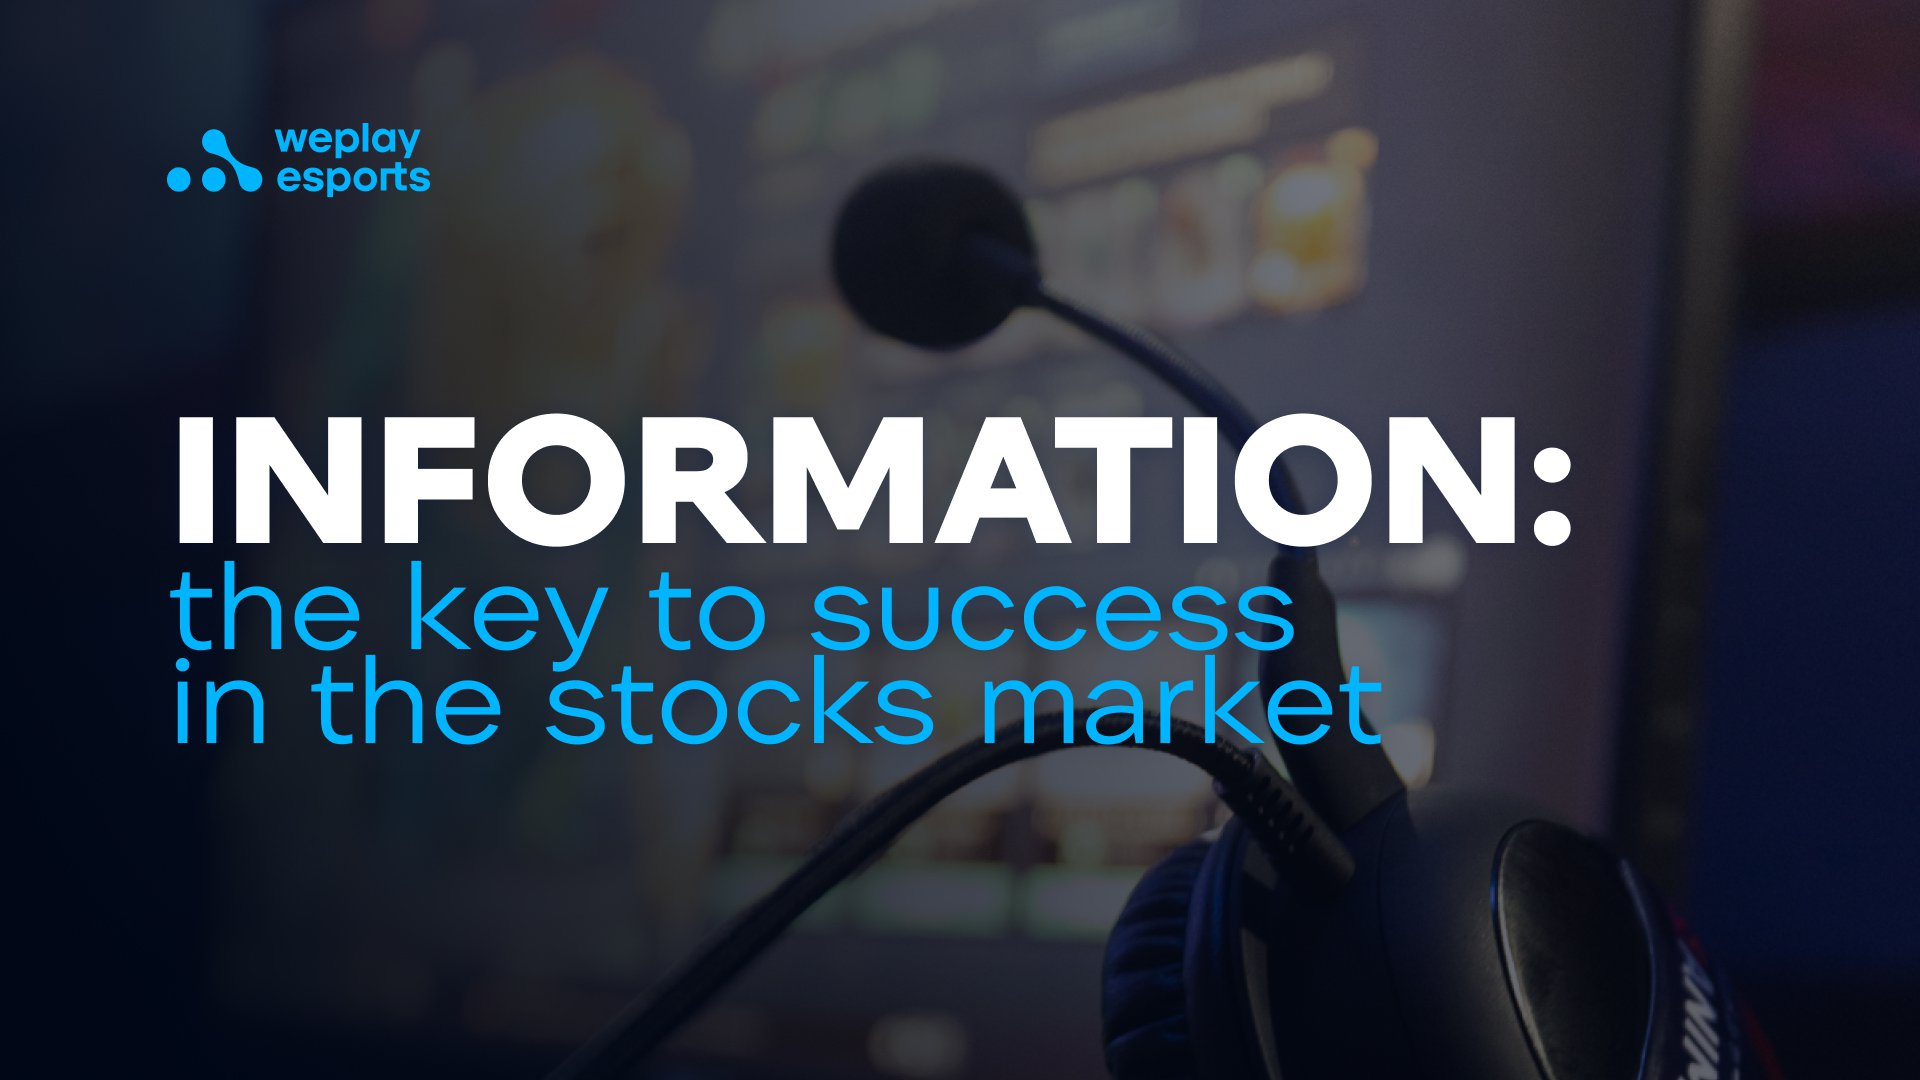 Information: the key to success in the stocks market